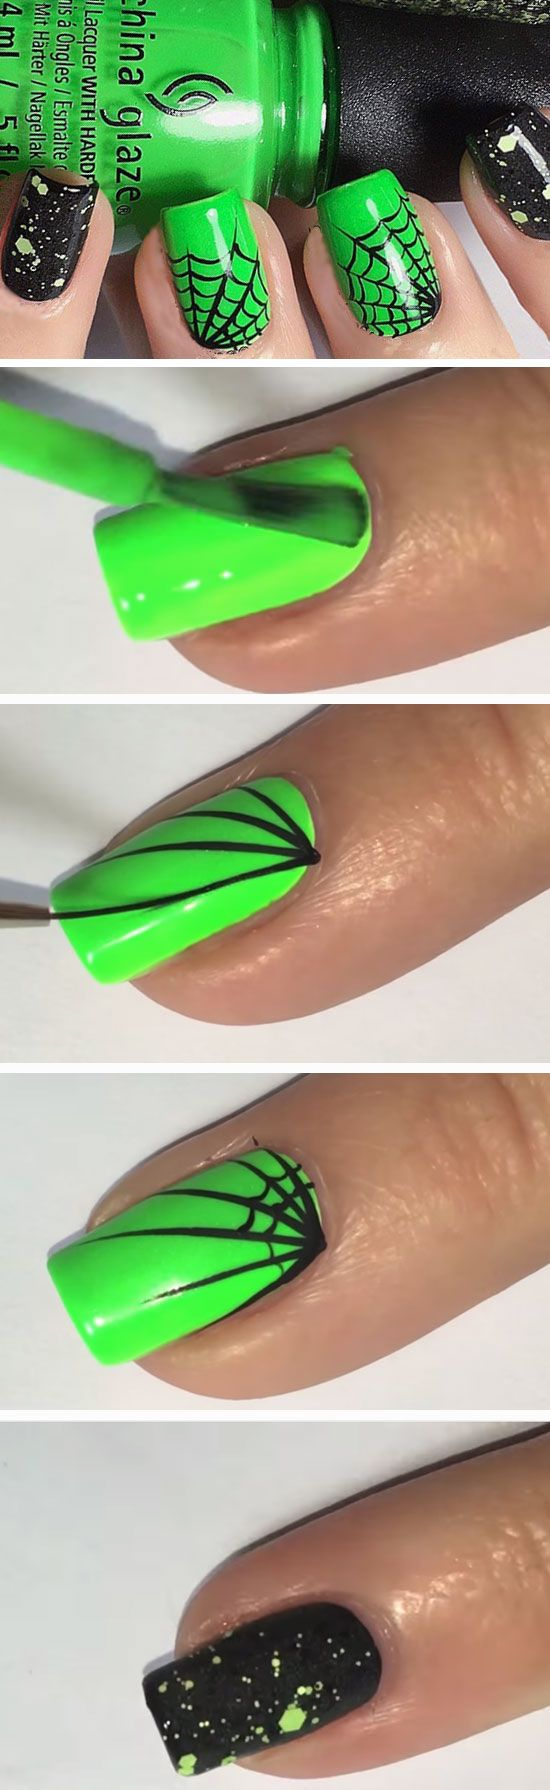 26 easy halloween nail art ideas for teens easy halloween nails 26 easy halloween nail art ideas for teens easy halloween nails easy halloween and teen prinsesfo Gallery